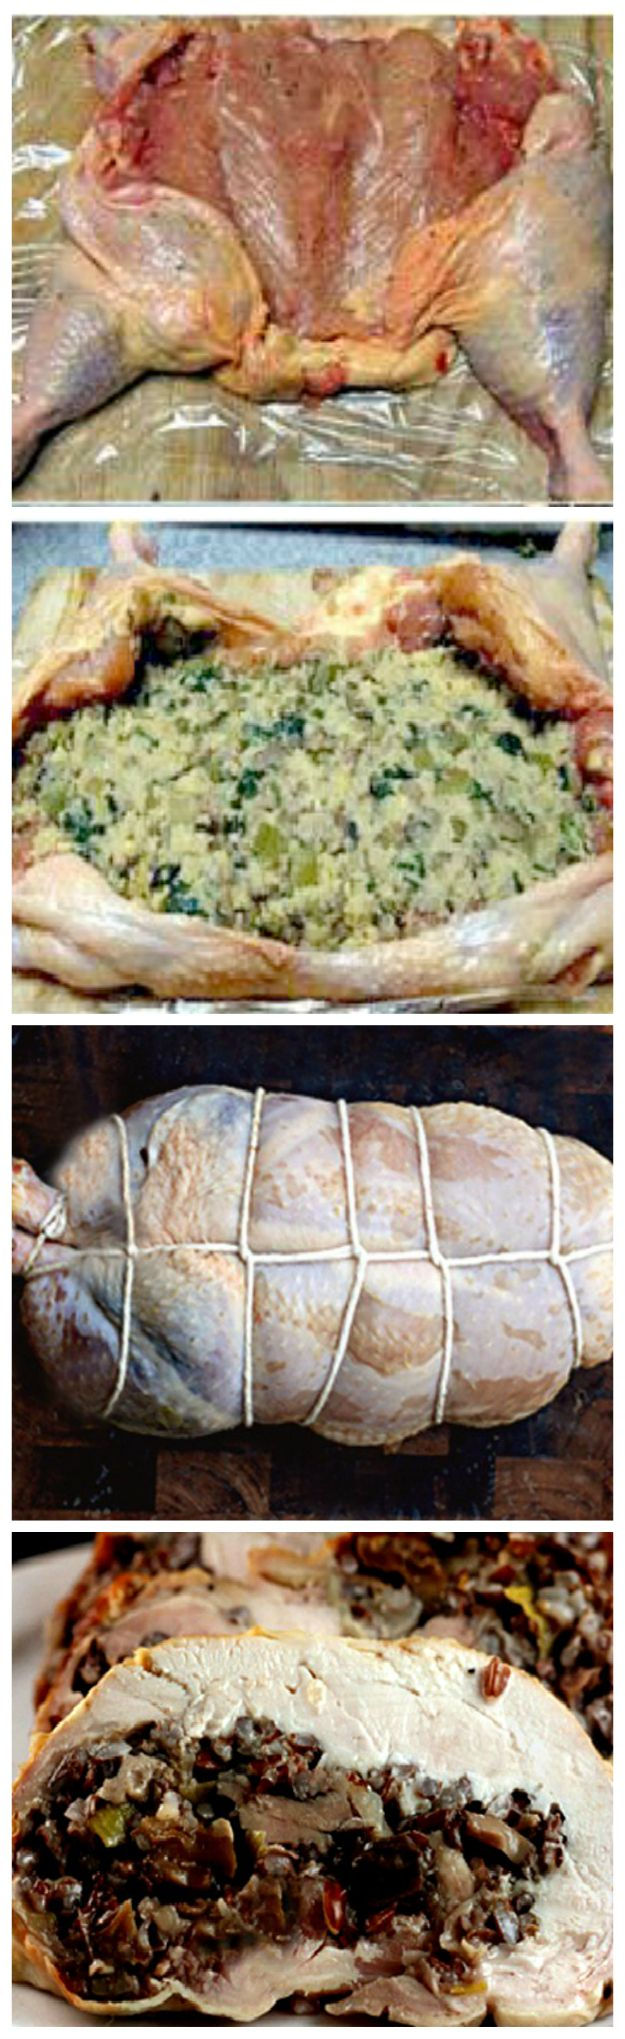 HOW TO DEBONE A WHOLE CHICKEN IN 15 MINUTES WITH MINIMAL CUTTING! After that learn how to stuff and roll it into the most amazing stuffed chicken you'll ever have!